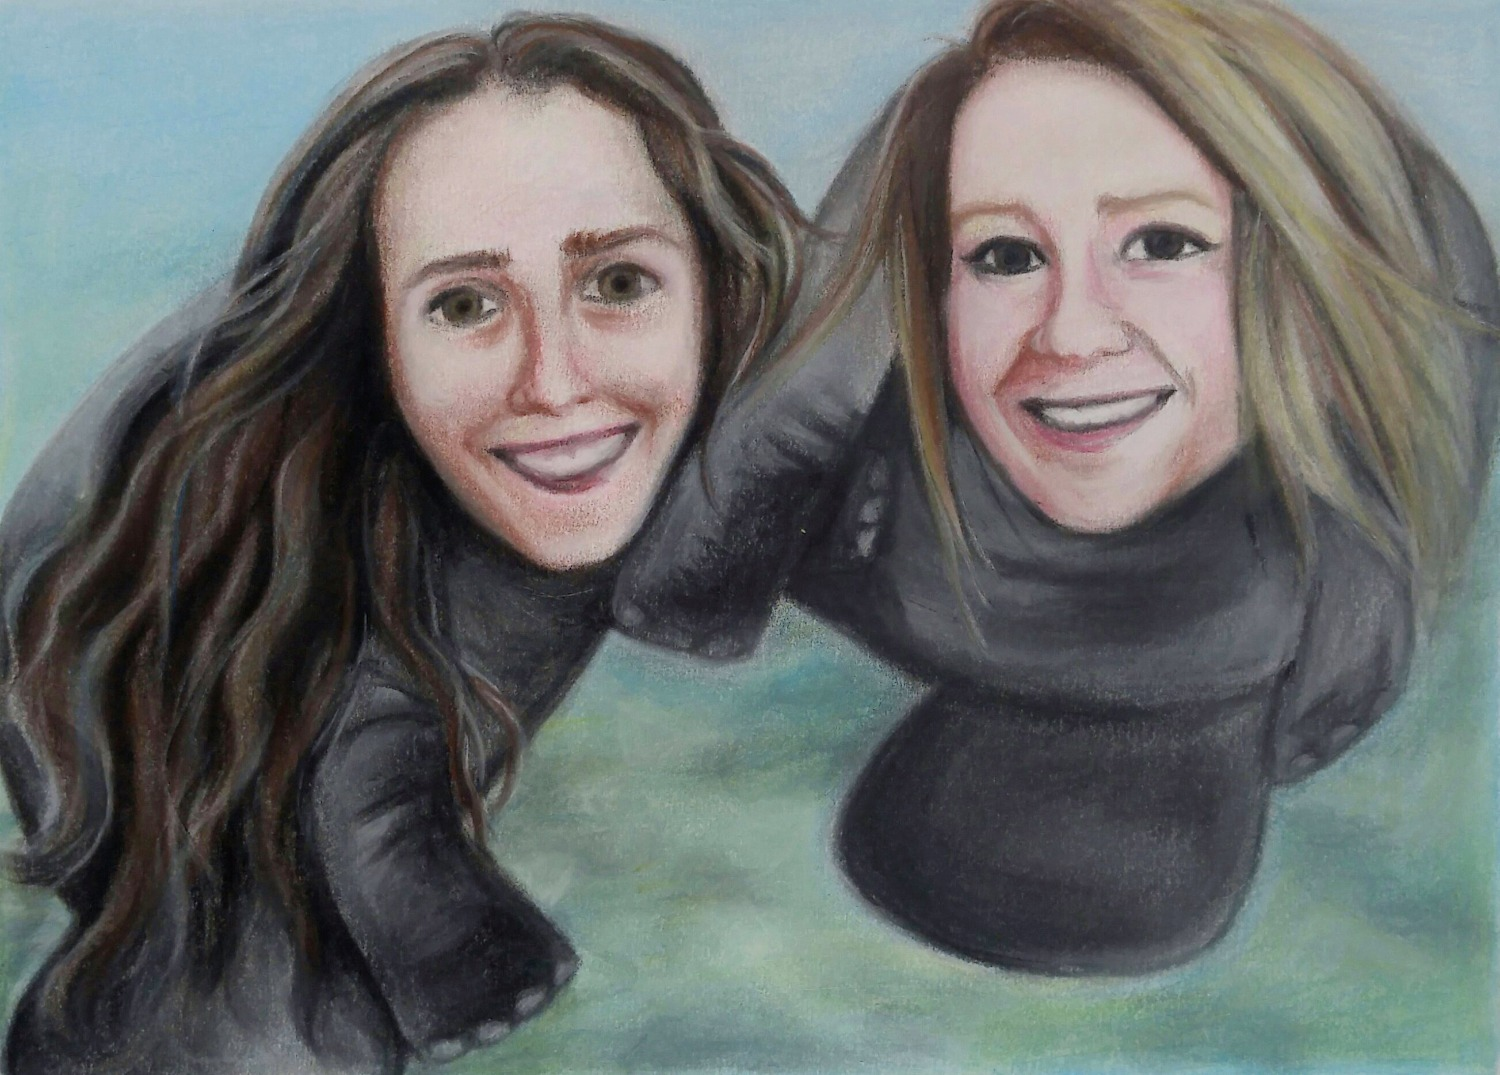 """Draw us as manatees."" - COMMISSION"